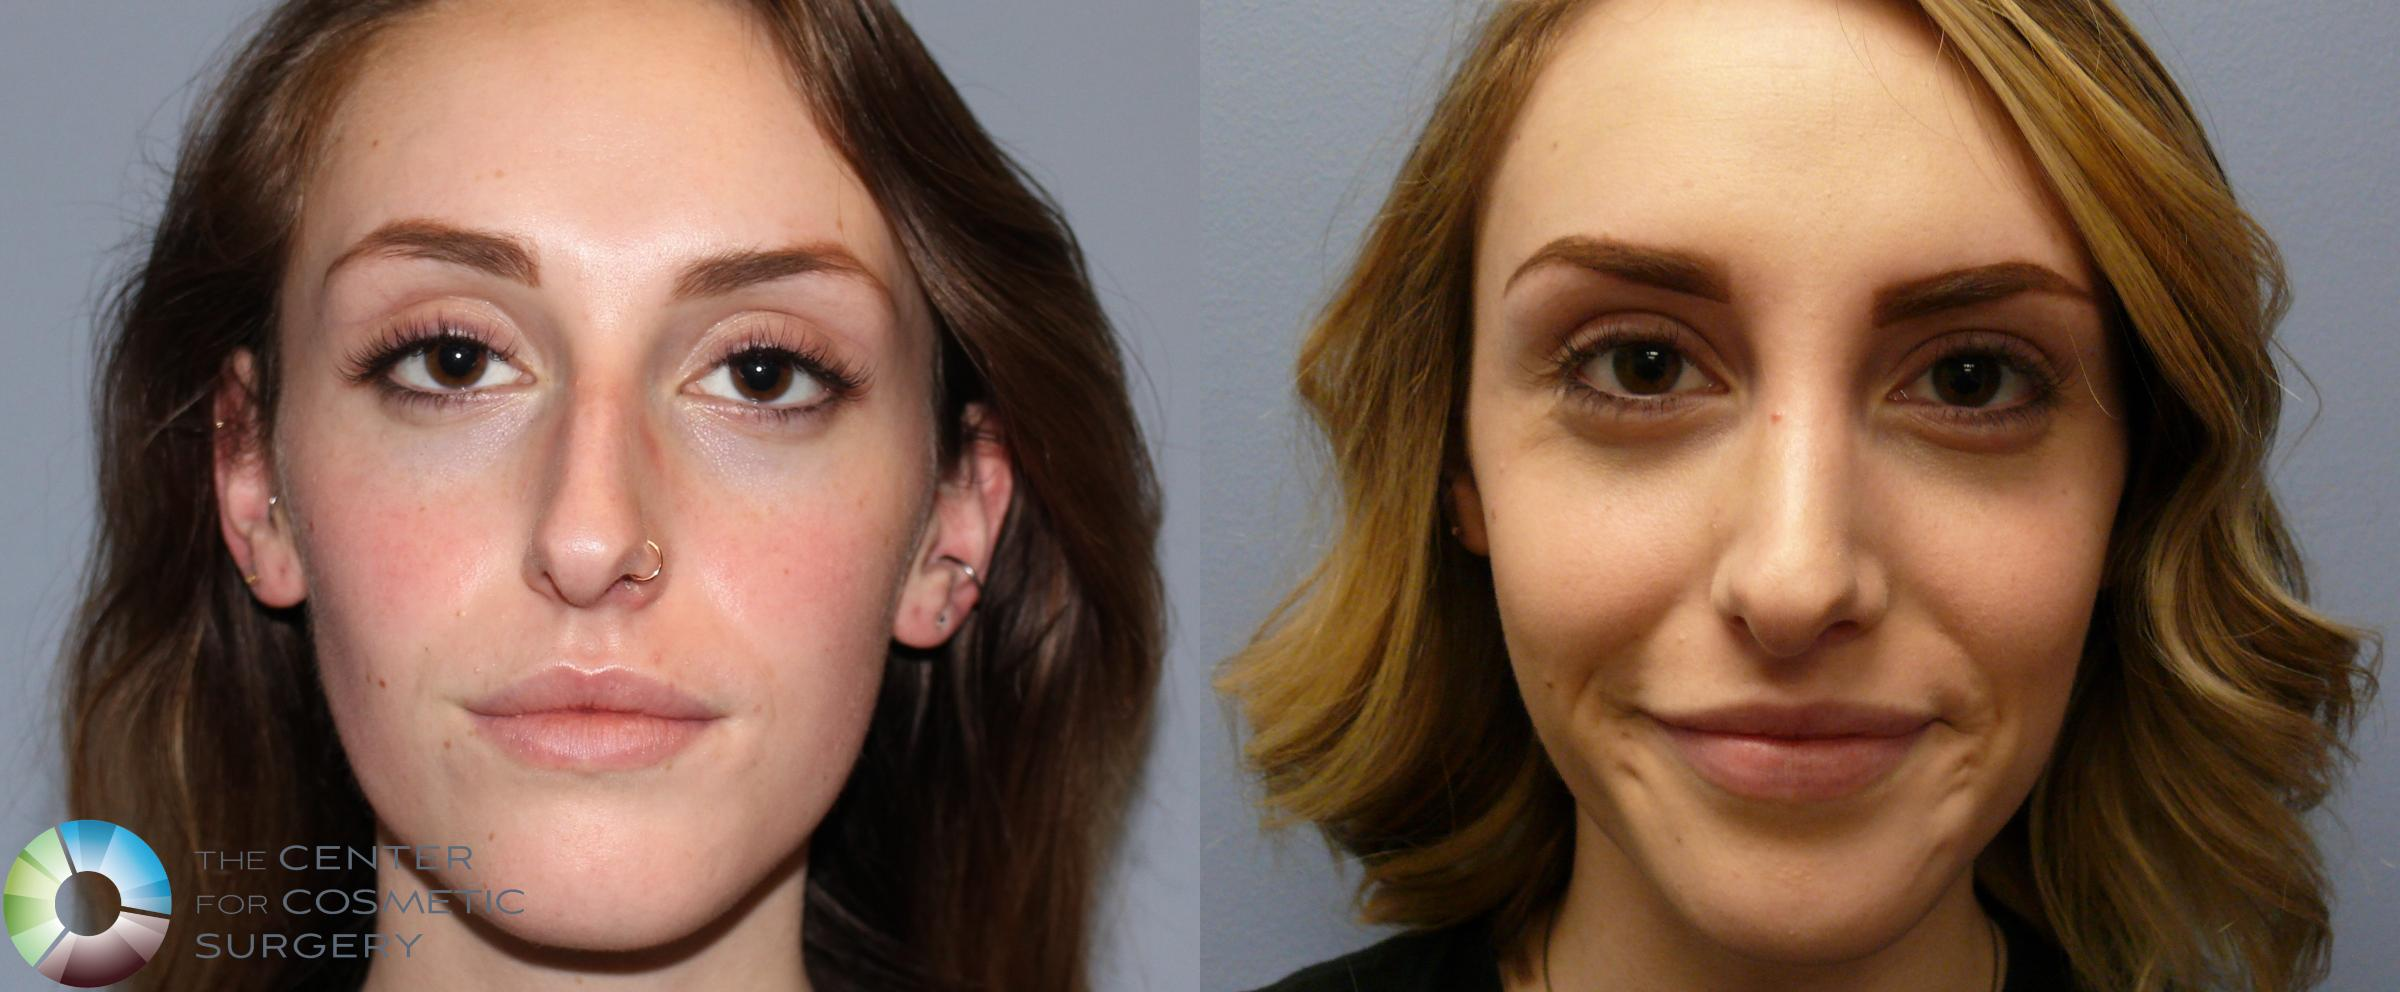 Rhinoplasty In Denver The Center For Cosmetic Surgery